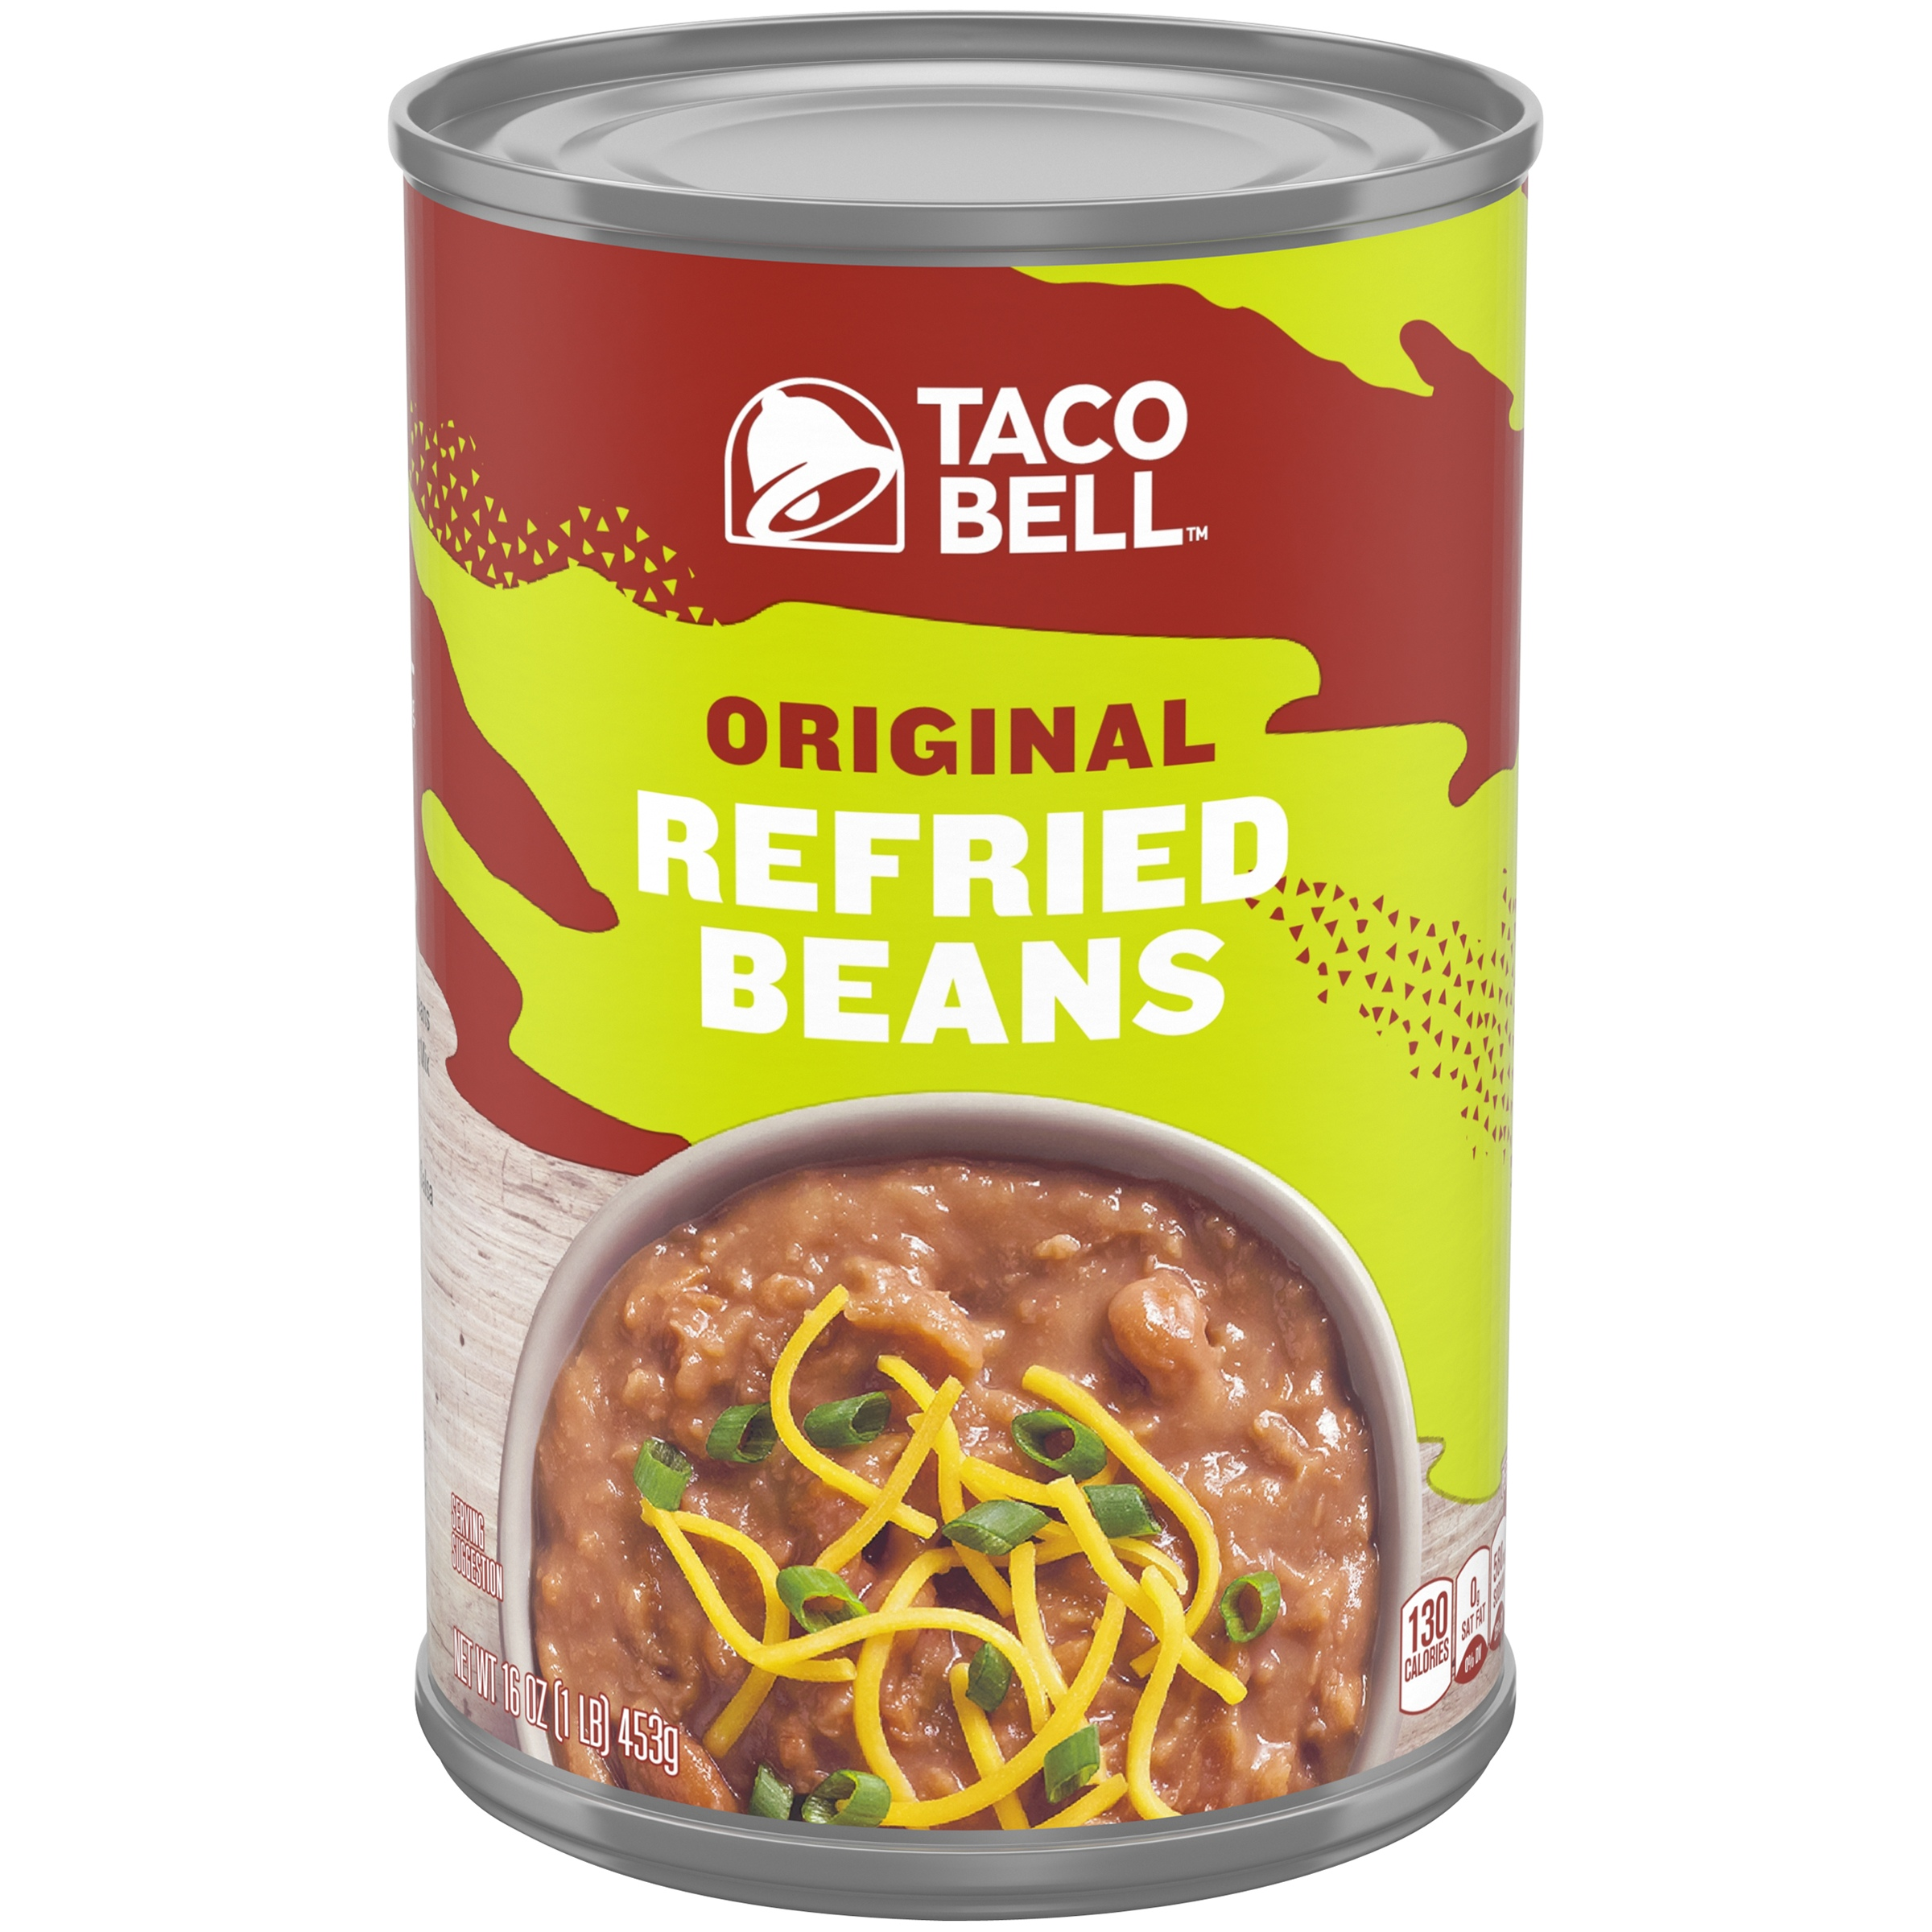 Taco Bell Original Refried Beans 16 oz. Can